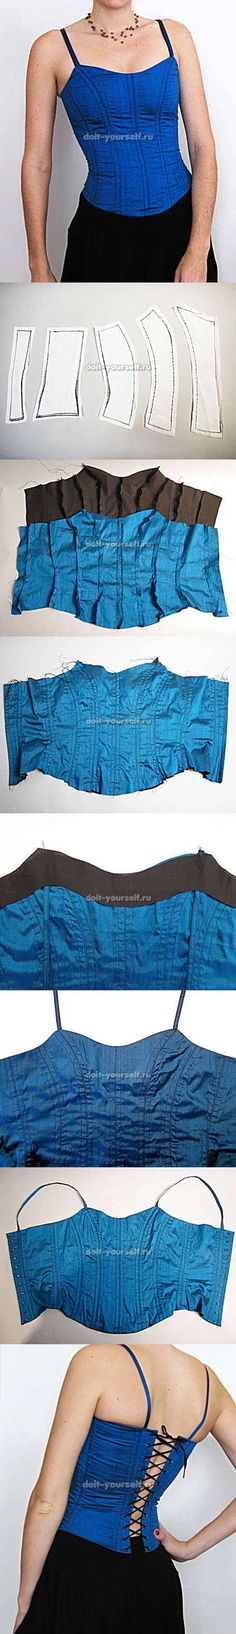 DIY Stylish Crop Top 2. Tank tops are very popular these days. You can wear them with jeans, shorts and sometimes even over a dress. Here is a fabulous idea you can try to make a stylish tank top. I really like the braid style in the back of the tank top. It looks so sexy! With a little bit of creativity, you can also create your own style of clothes. Let's get crafting!